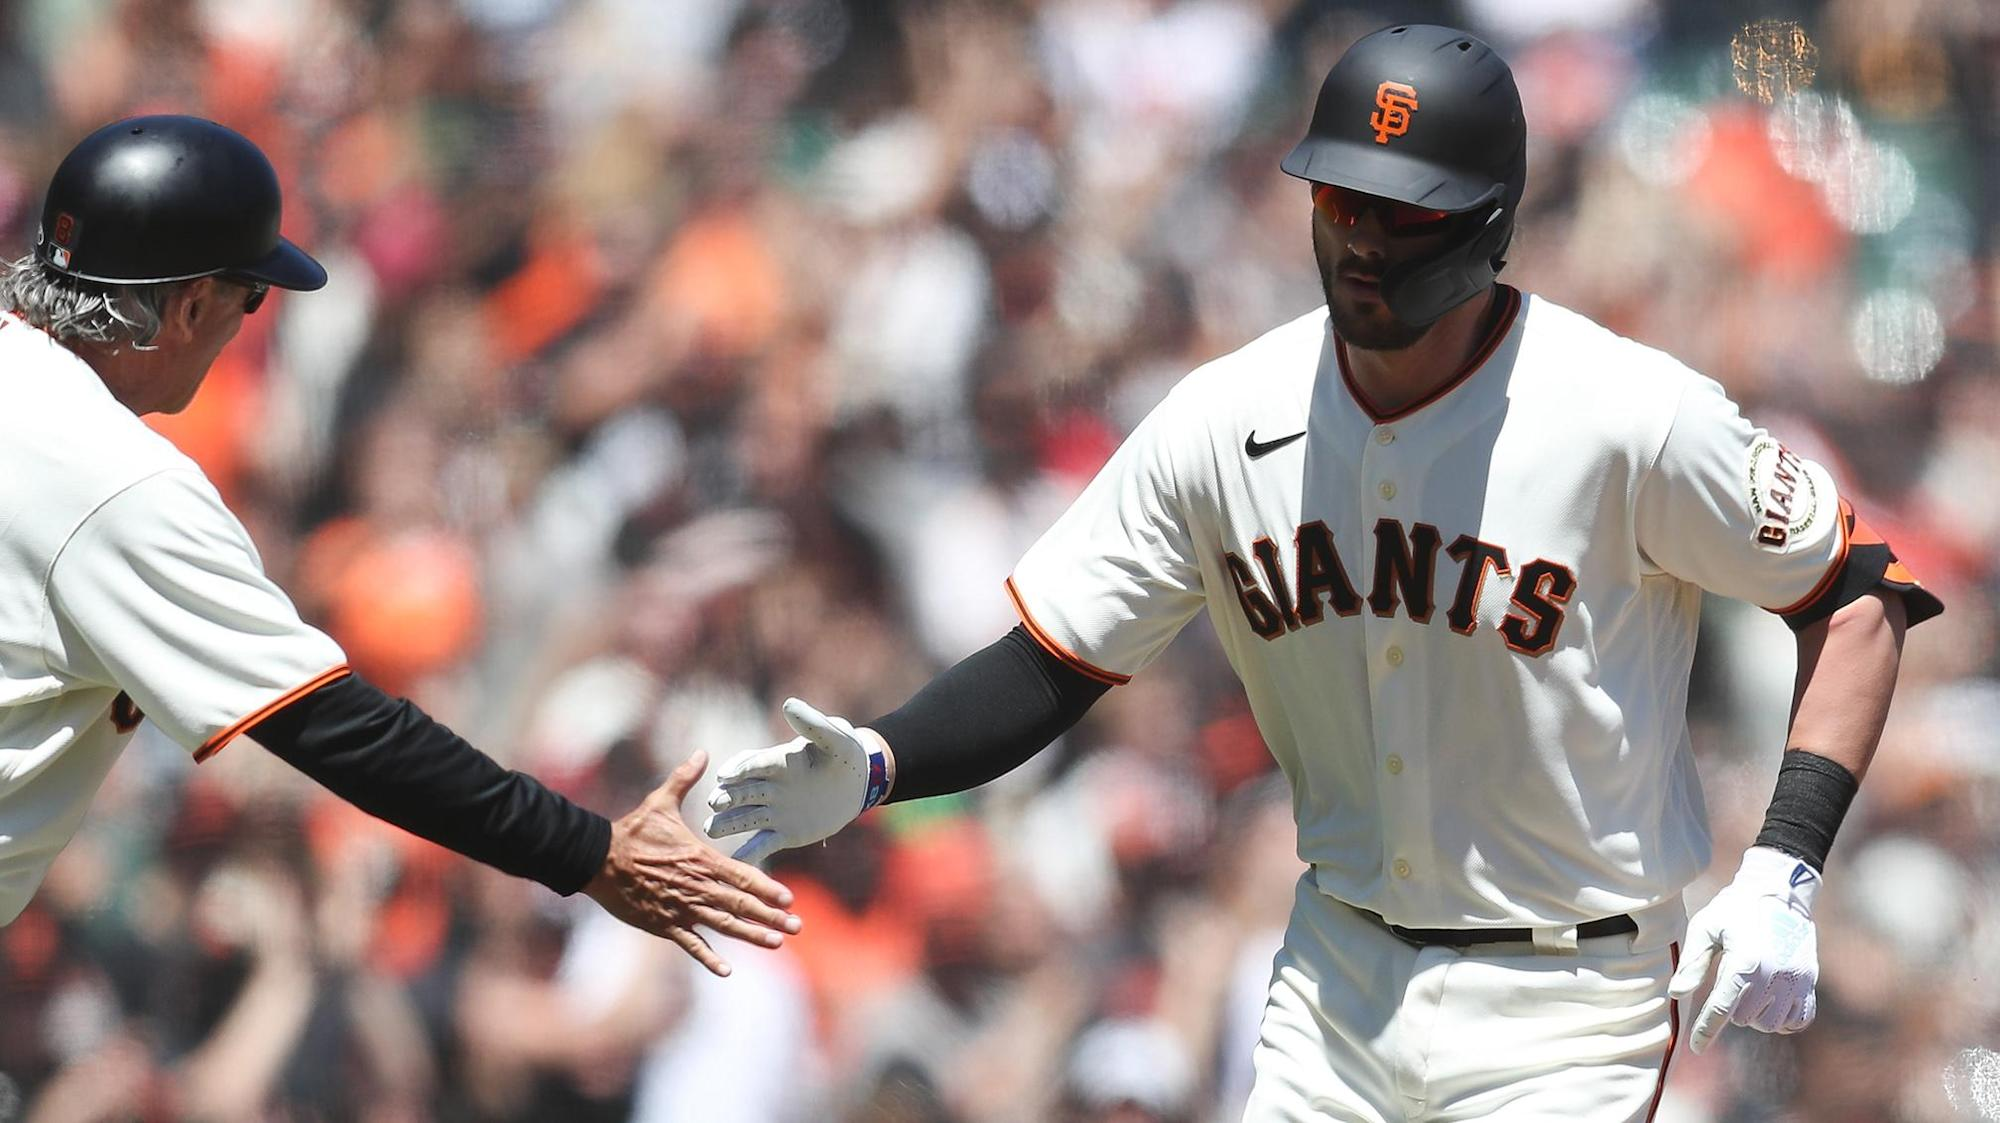 Fantasy Baseball: Kris Bryant homers and makes history in Giants debut